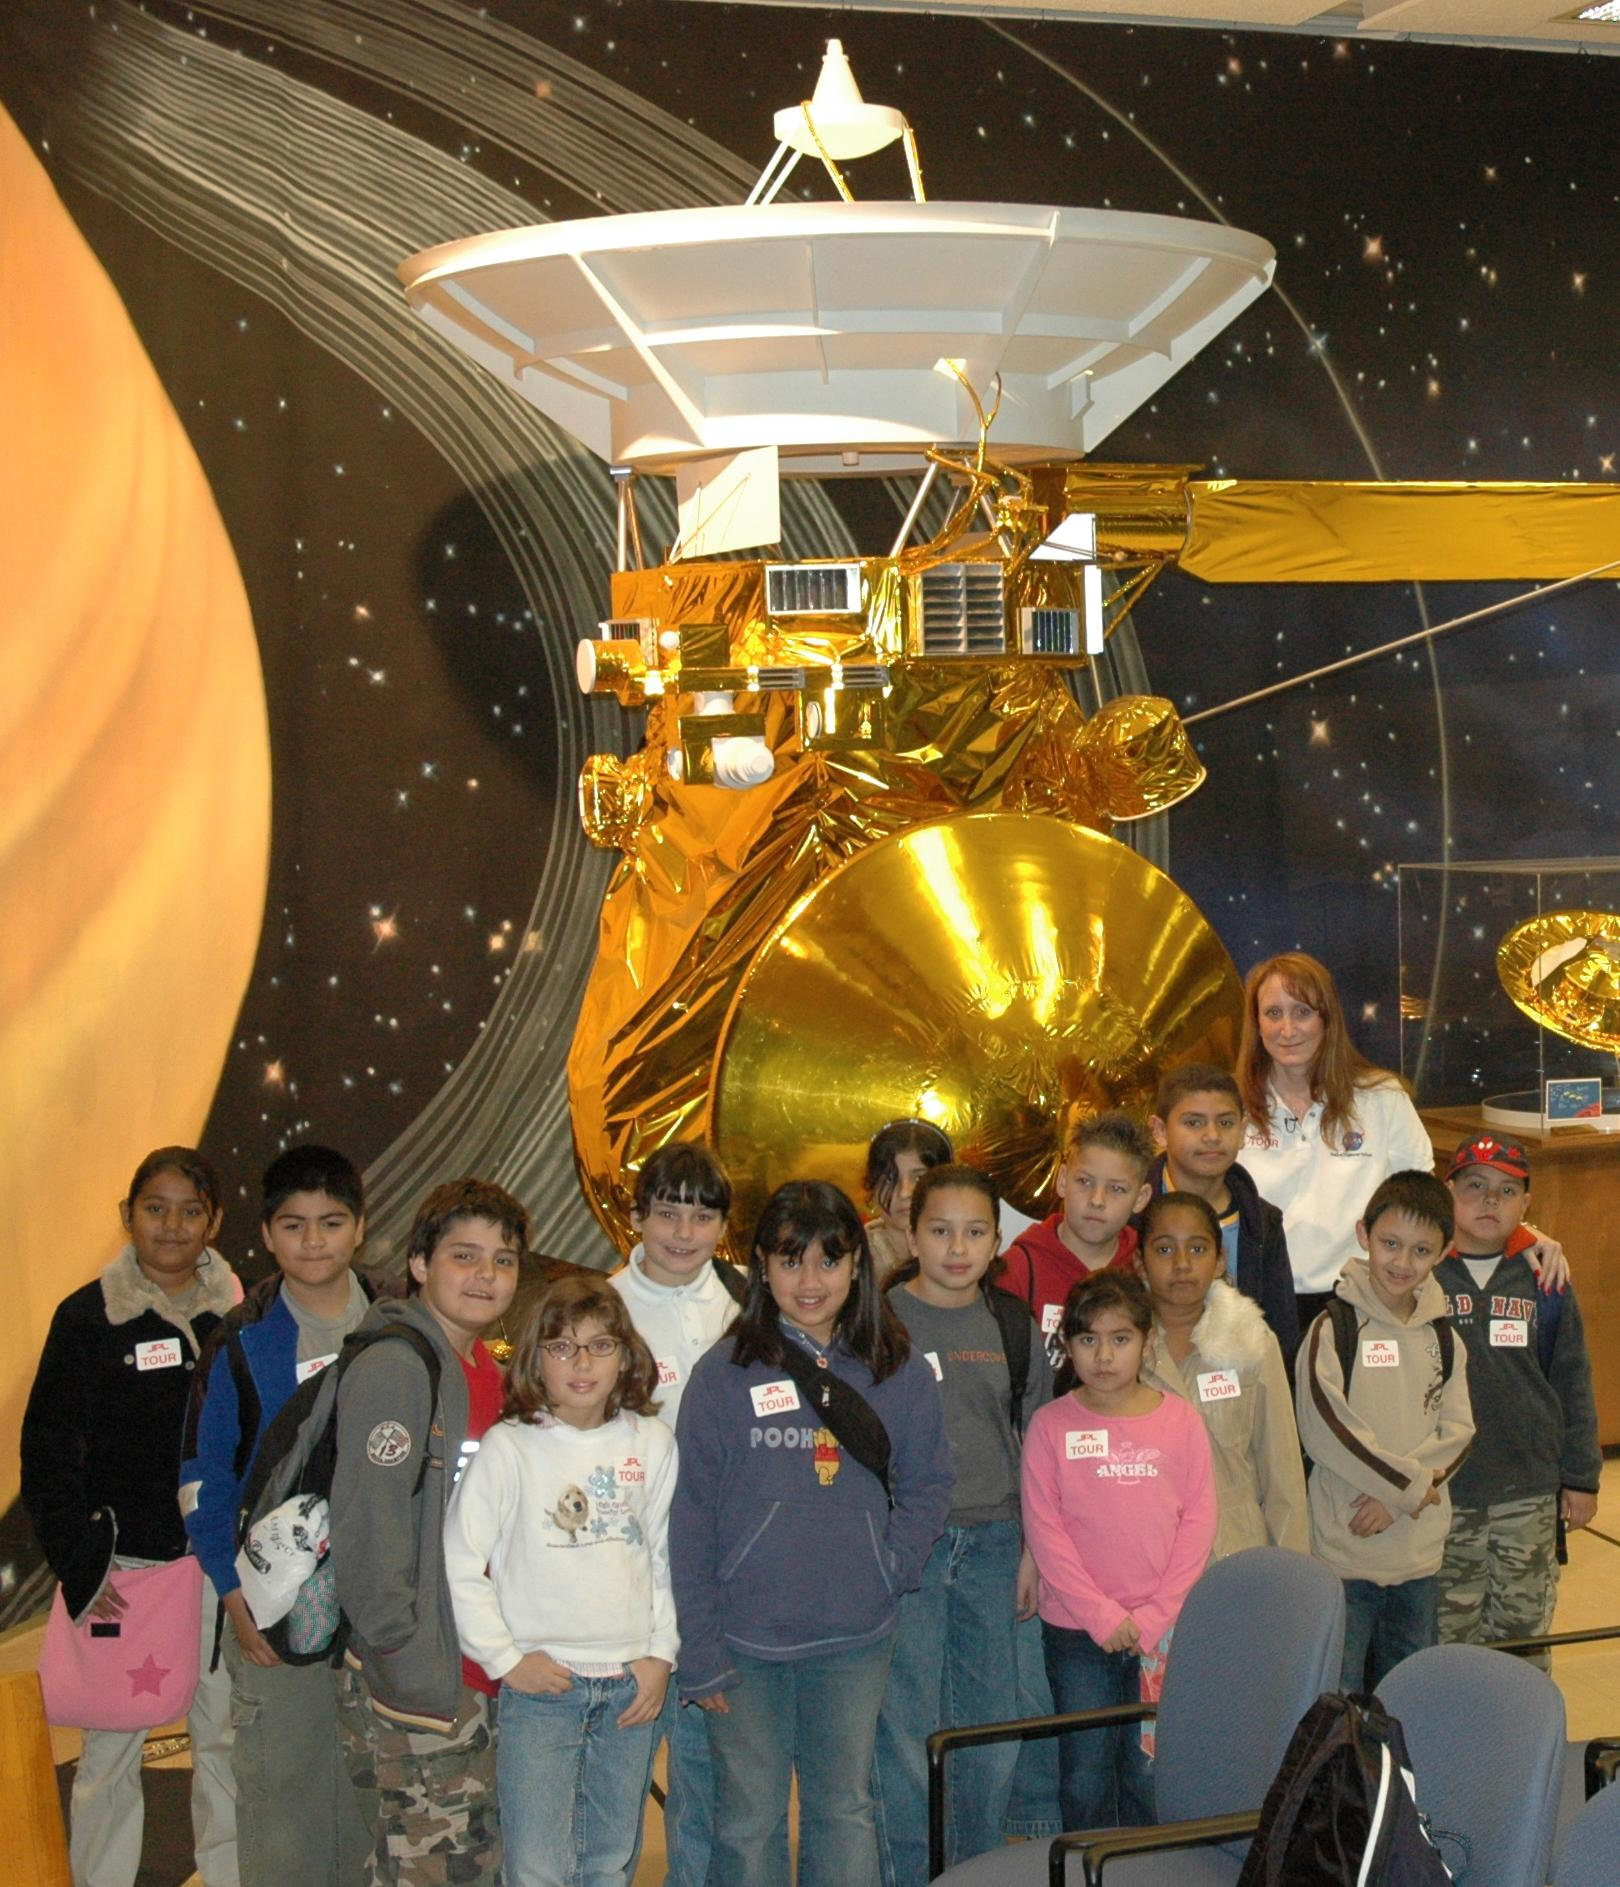 Students and their teacher pose in front of a half-scale model of Cassini